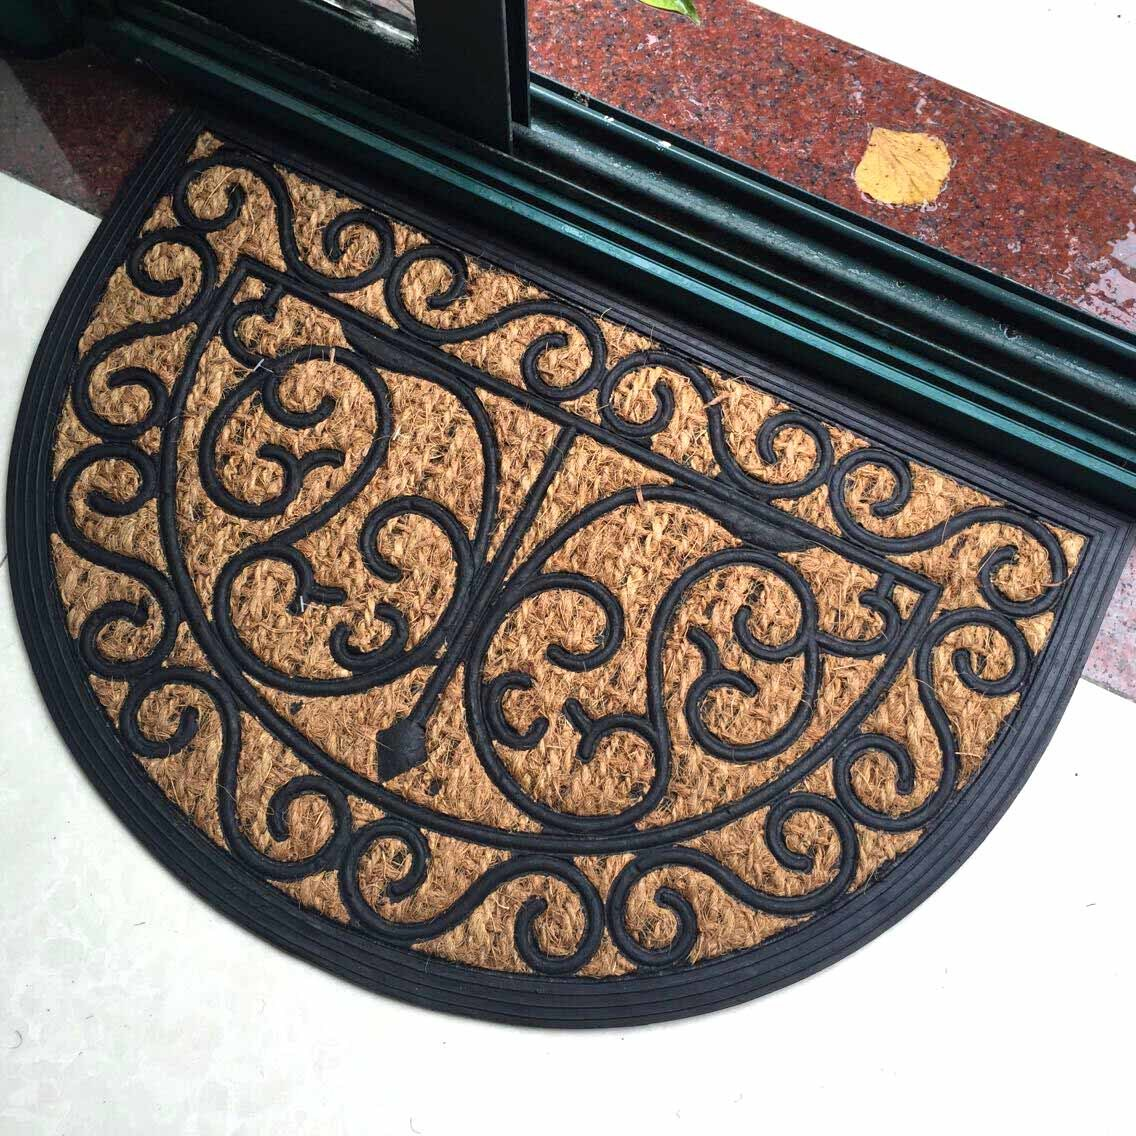 Rubberized Entrance Welcome Coco Coconut Rubber Backed Coir Mats